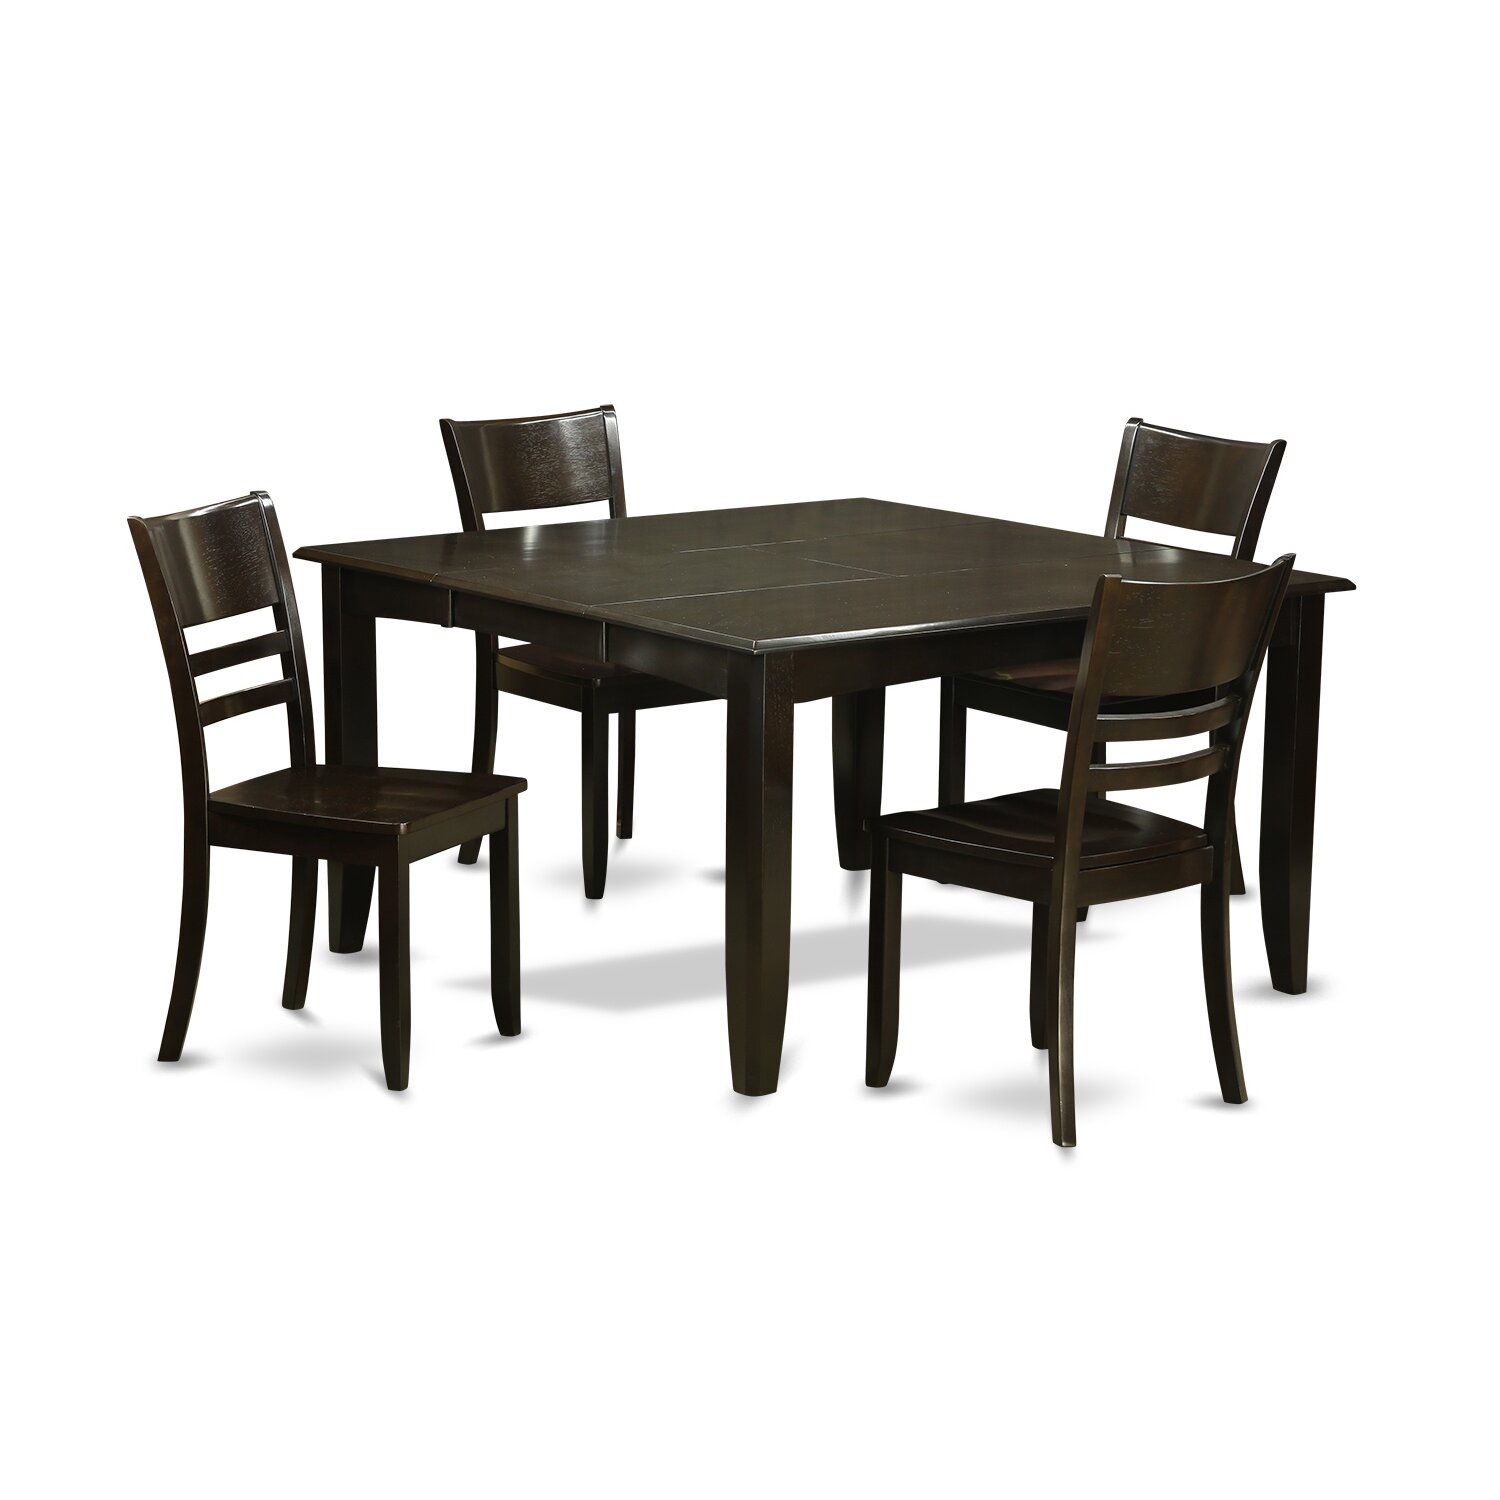 Wooden importers parfait 5 piece dining set wayfair for Small dining room table and chairs